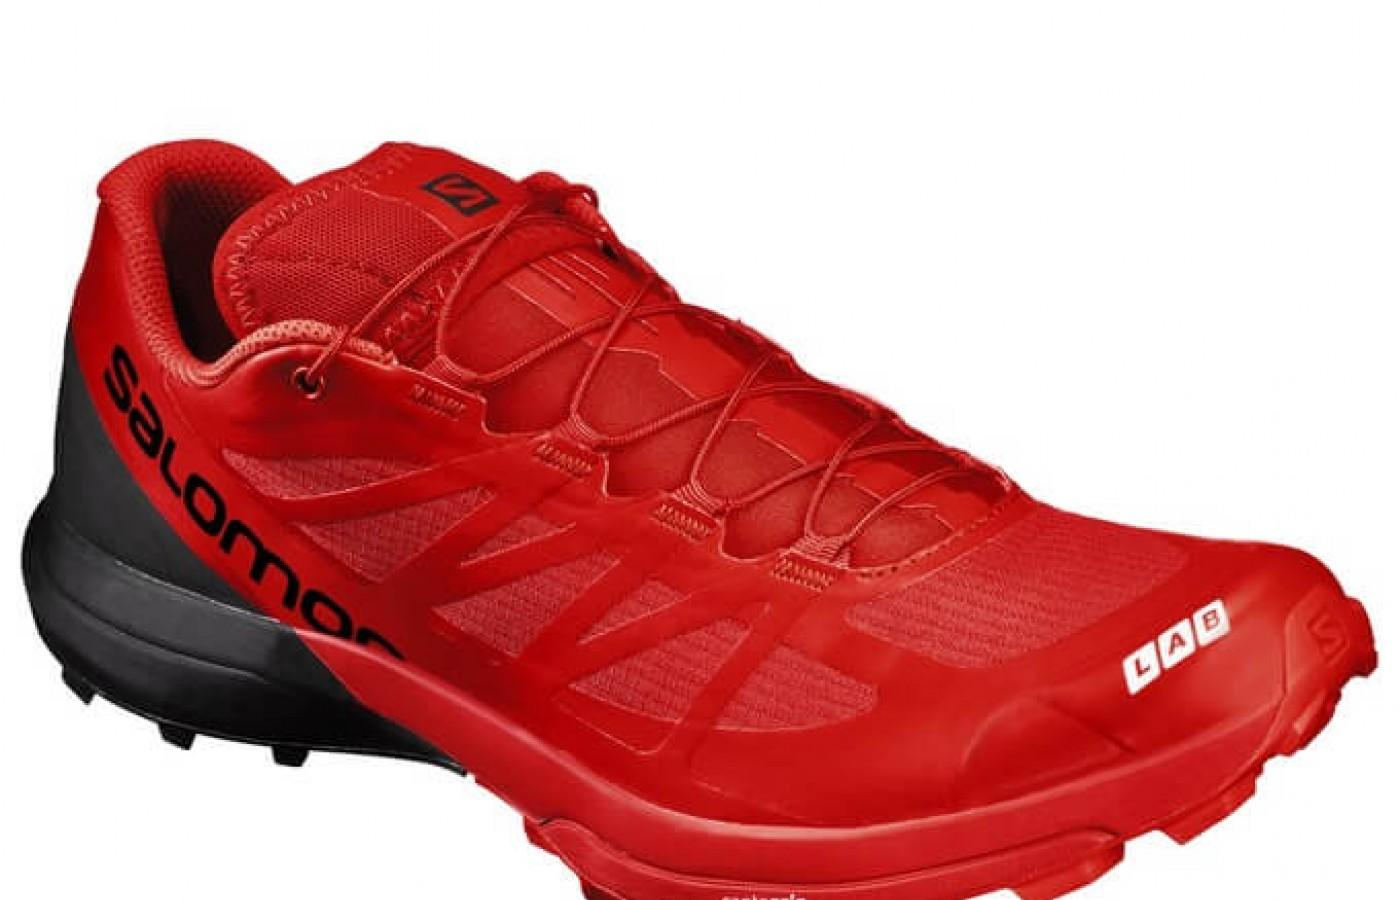 The Salomon S-Lab Sense 6 SG has a 4mm drop